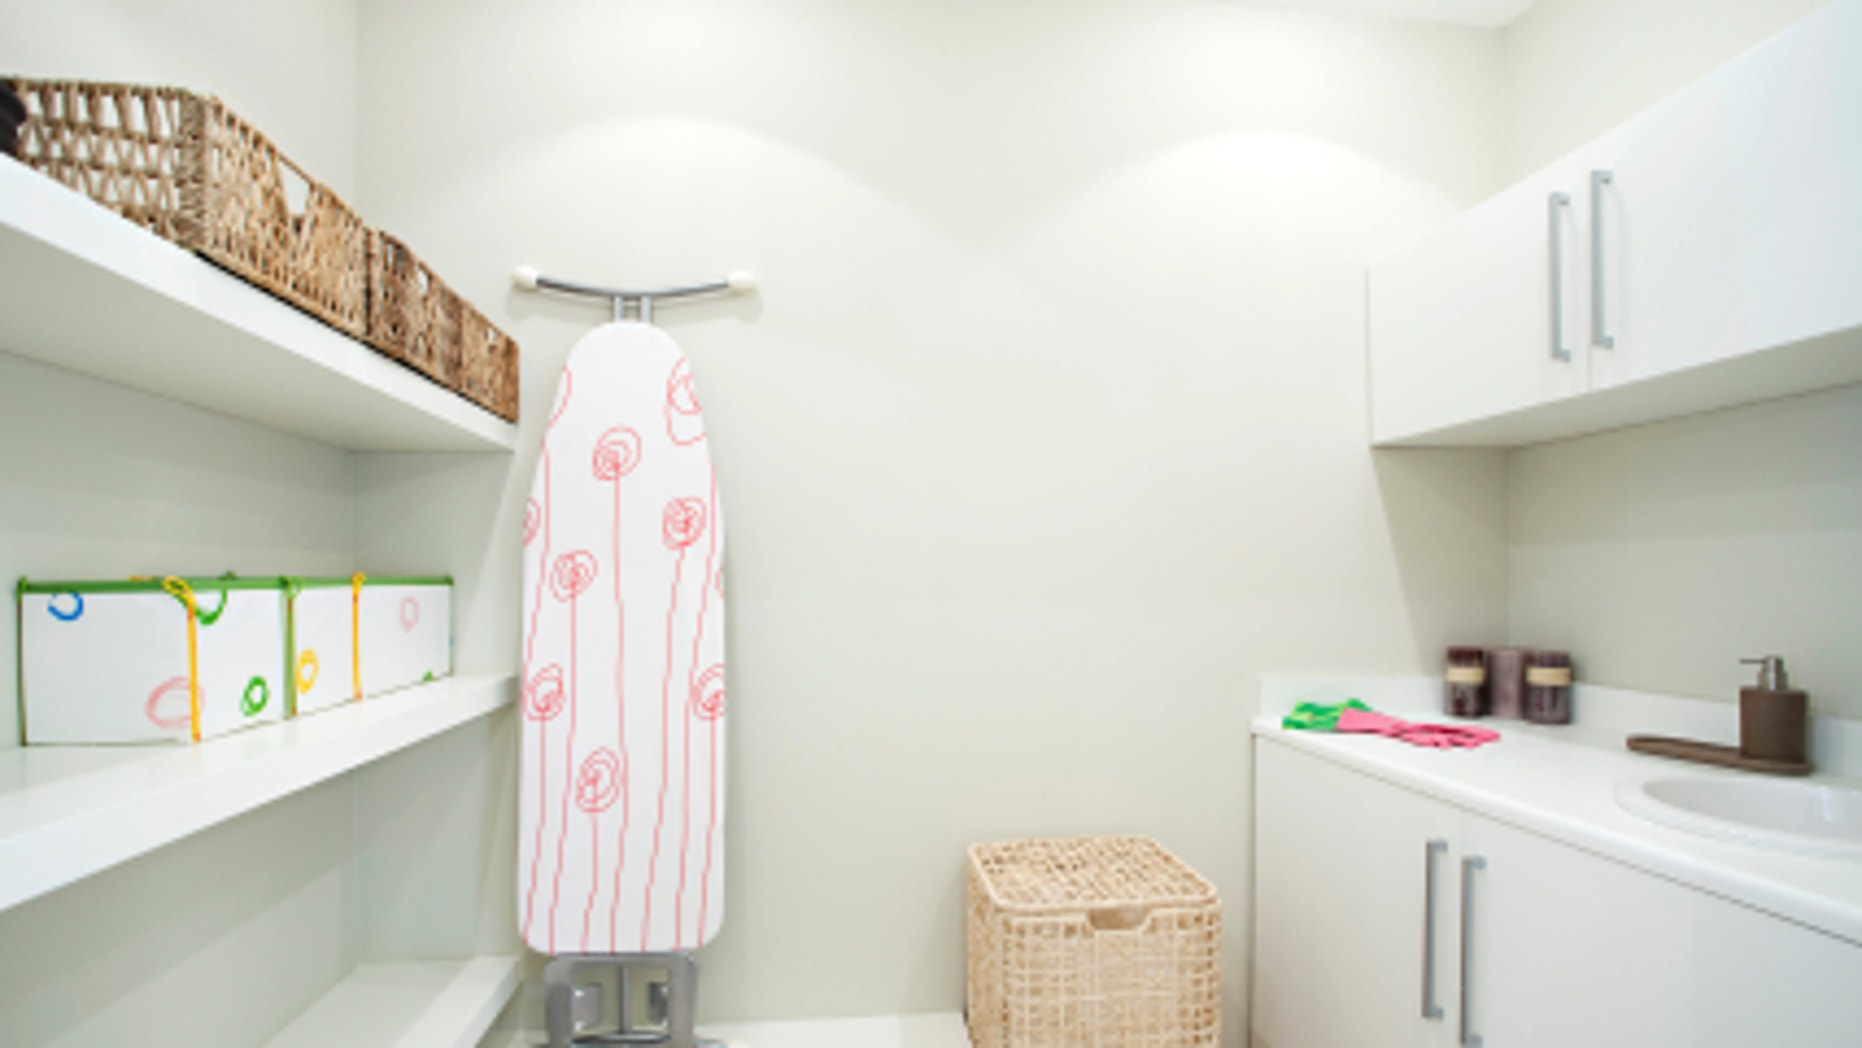 5 Diy Laundry Room Storage Ideas Fox News